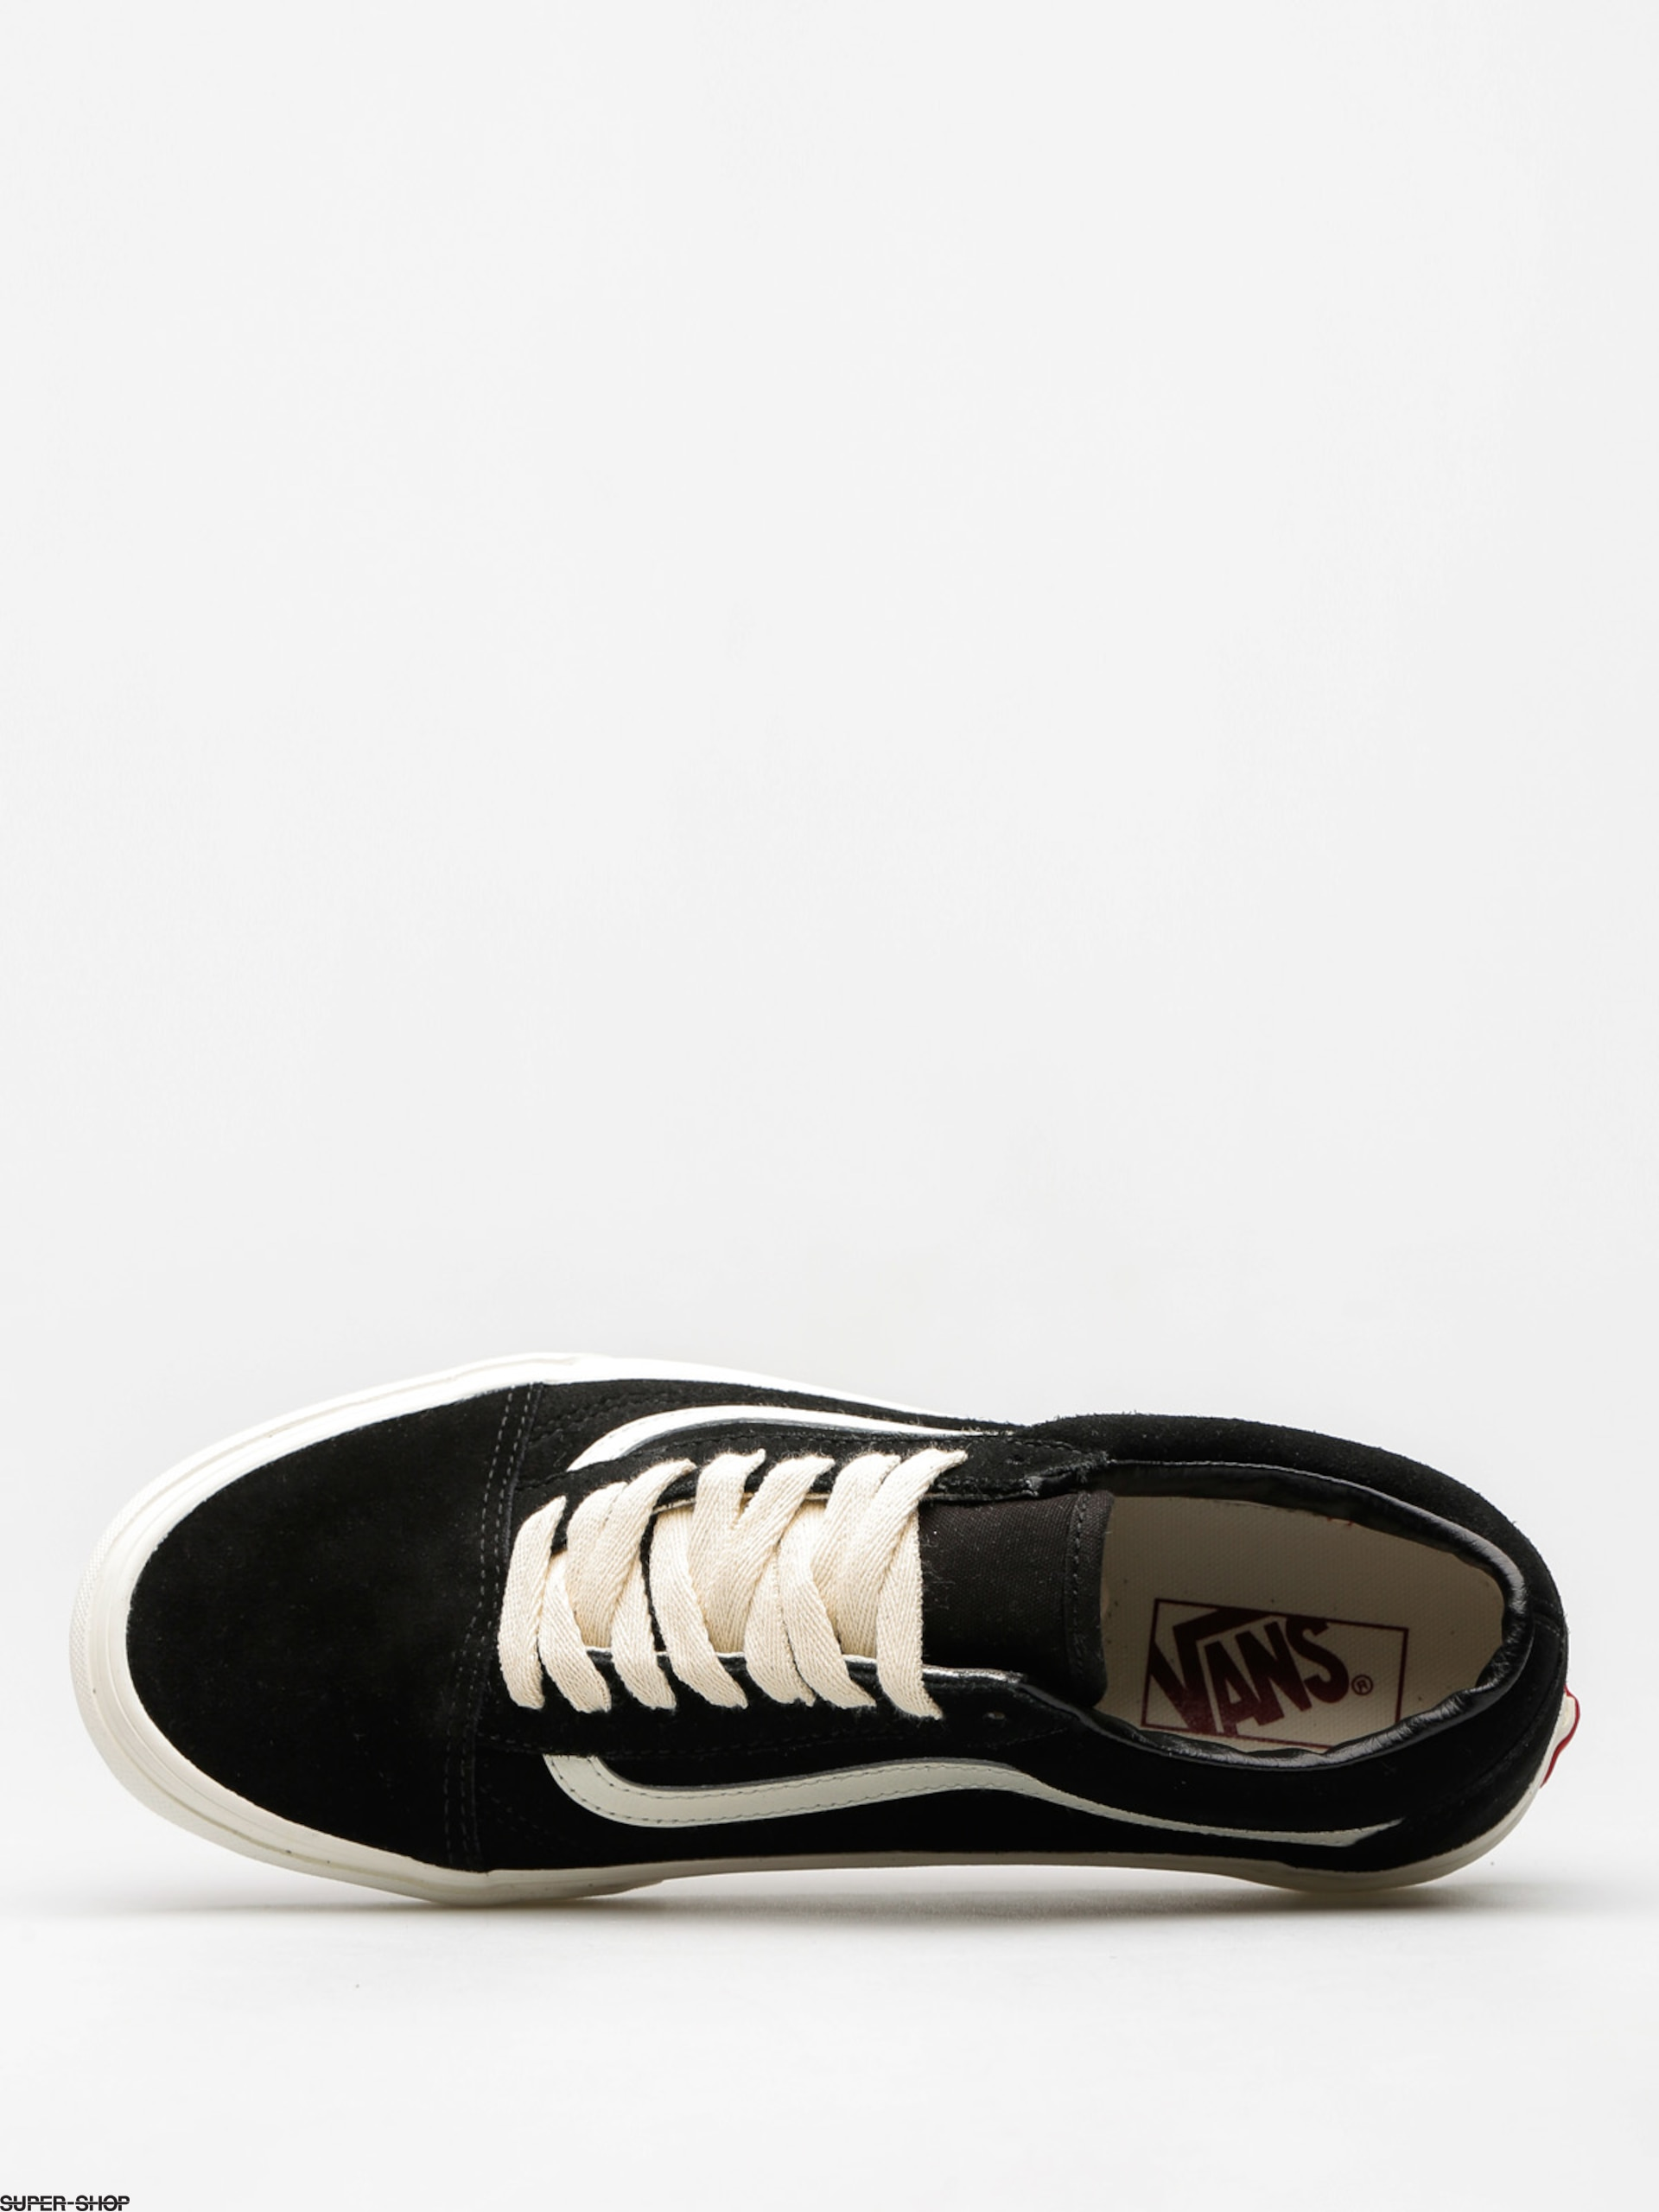 vans old skool herringbone lace black